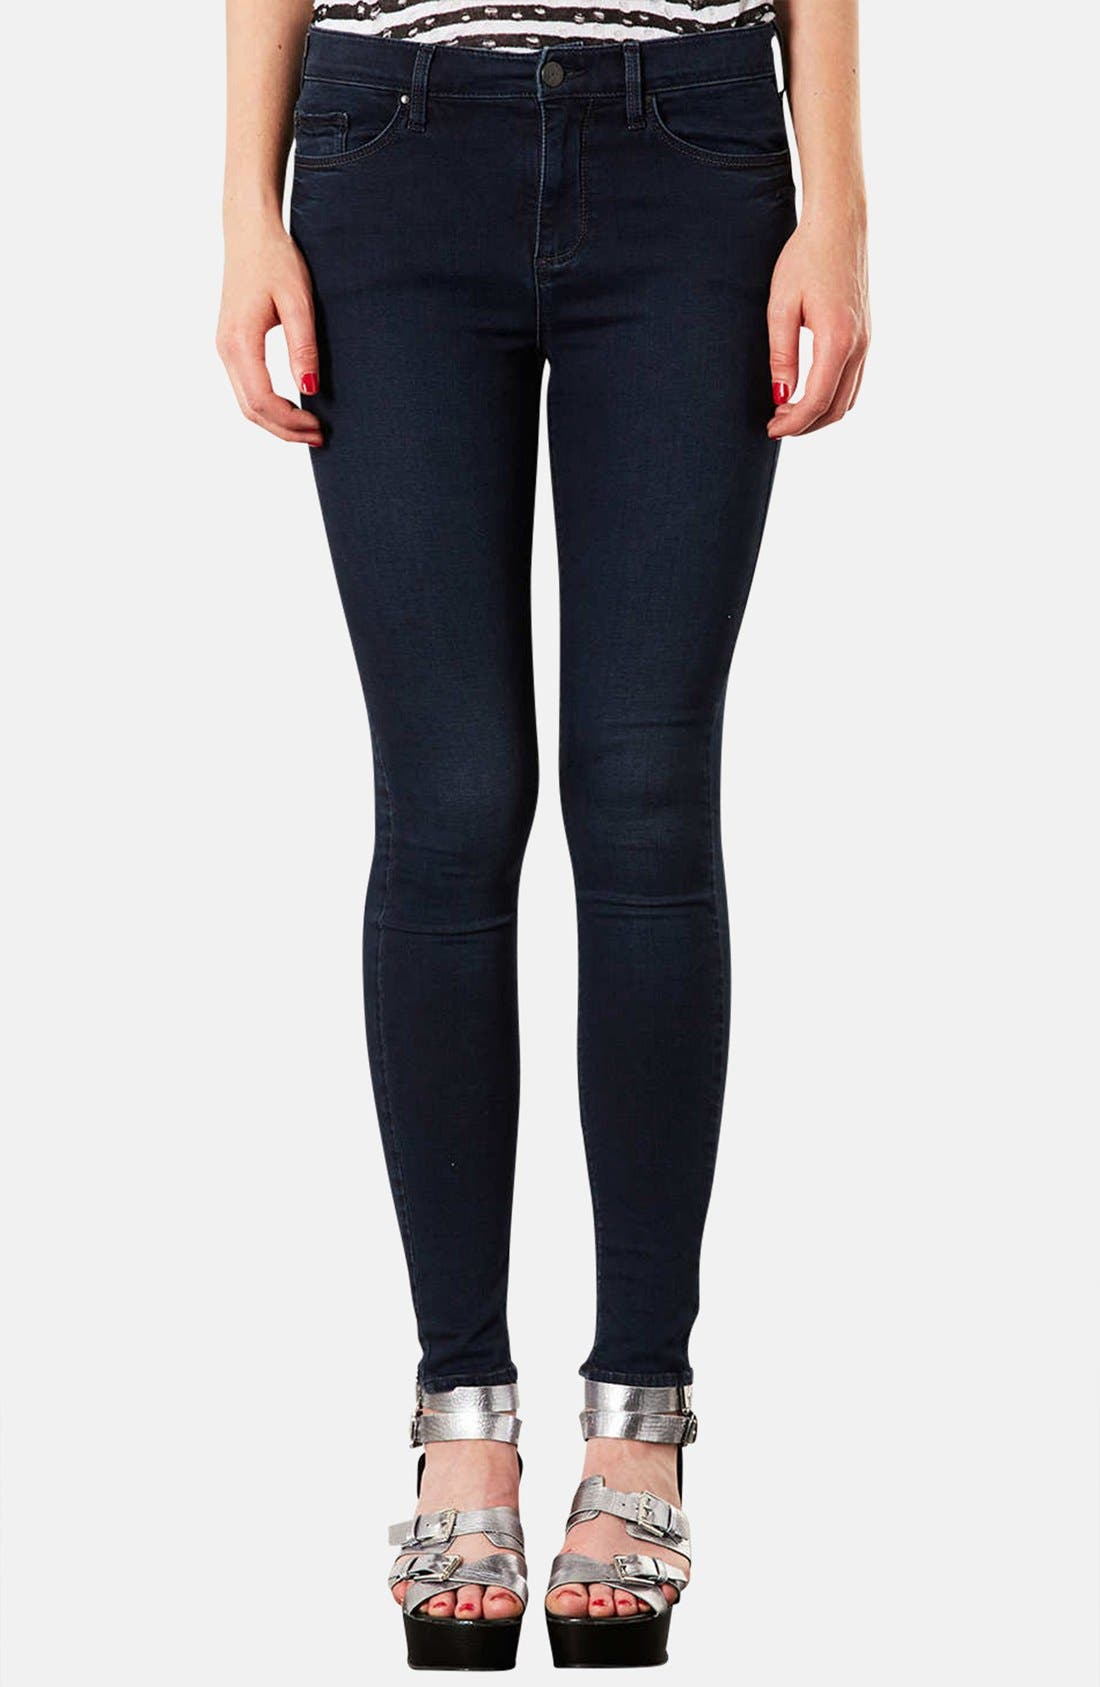 Alternate Image 1 Selected - Topshop Moto 'Leigh' Skinny Jeans (Indigo) (Regular & Short)